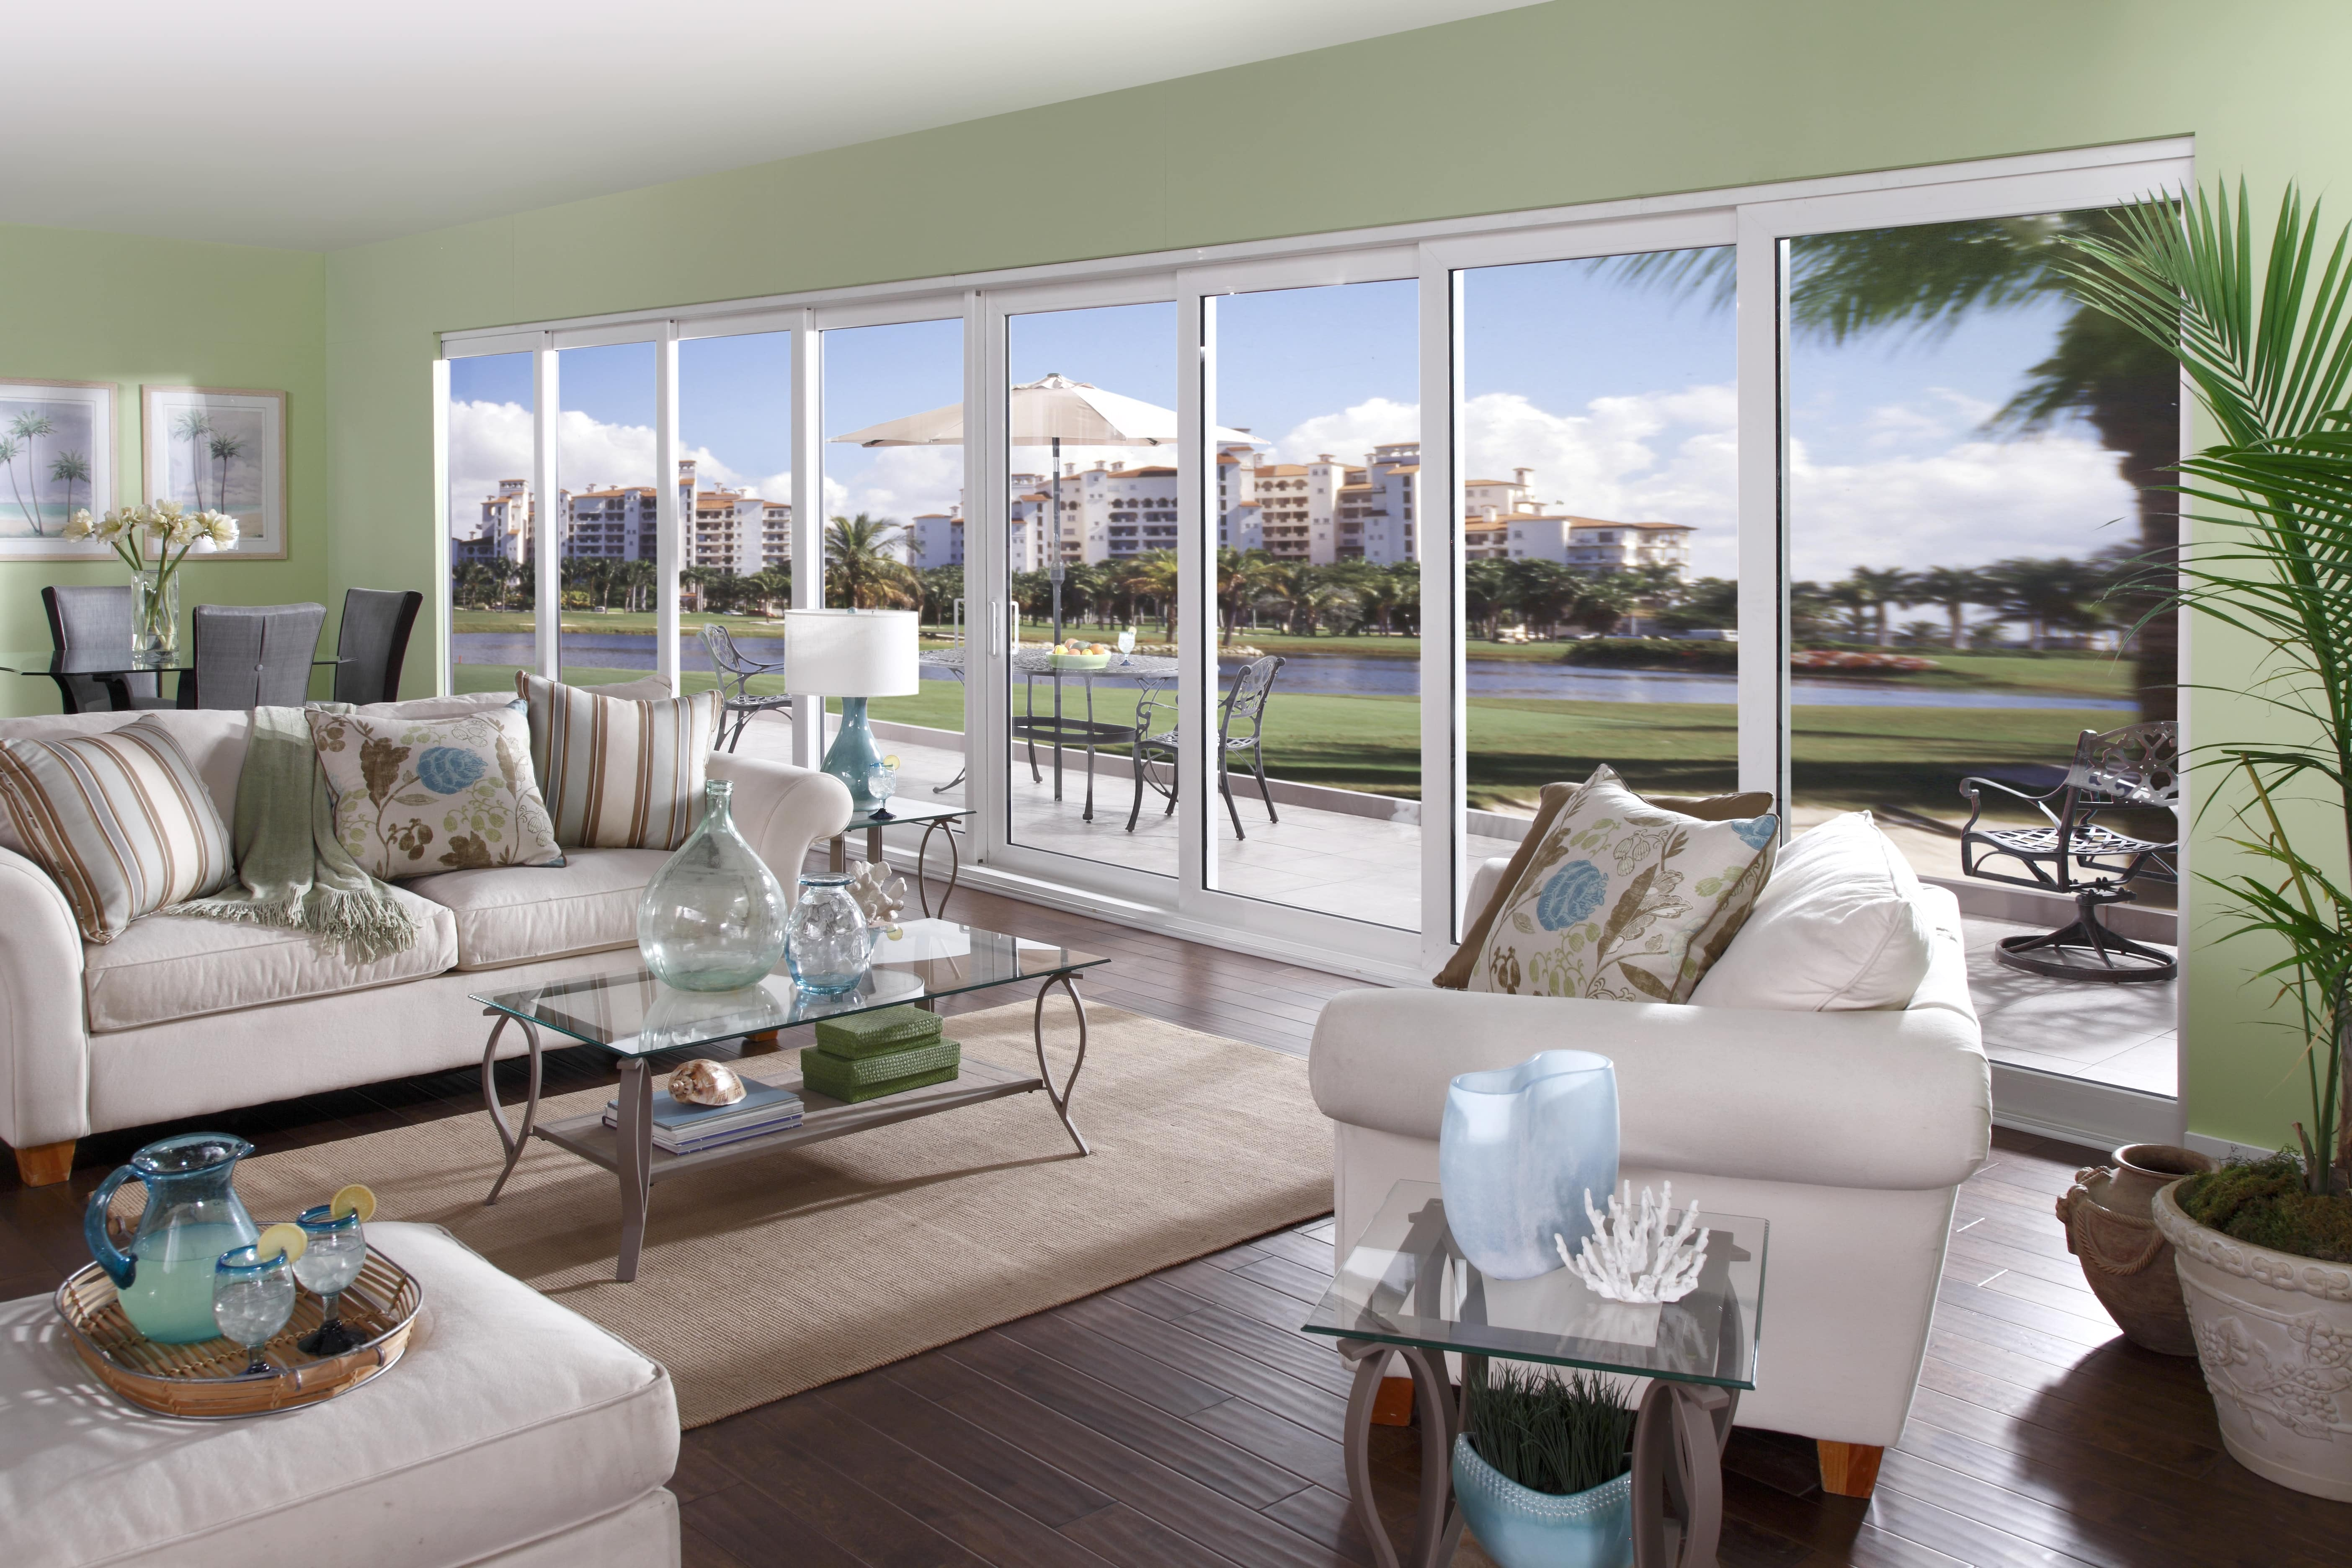 What Are Impact Resistant Windows?